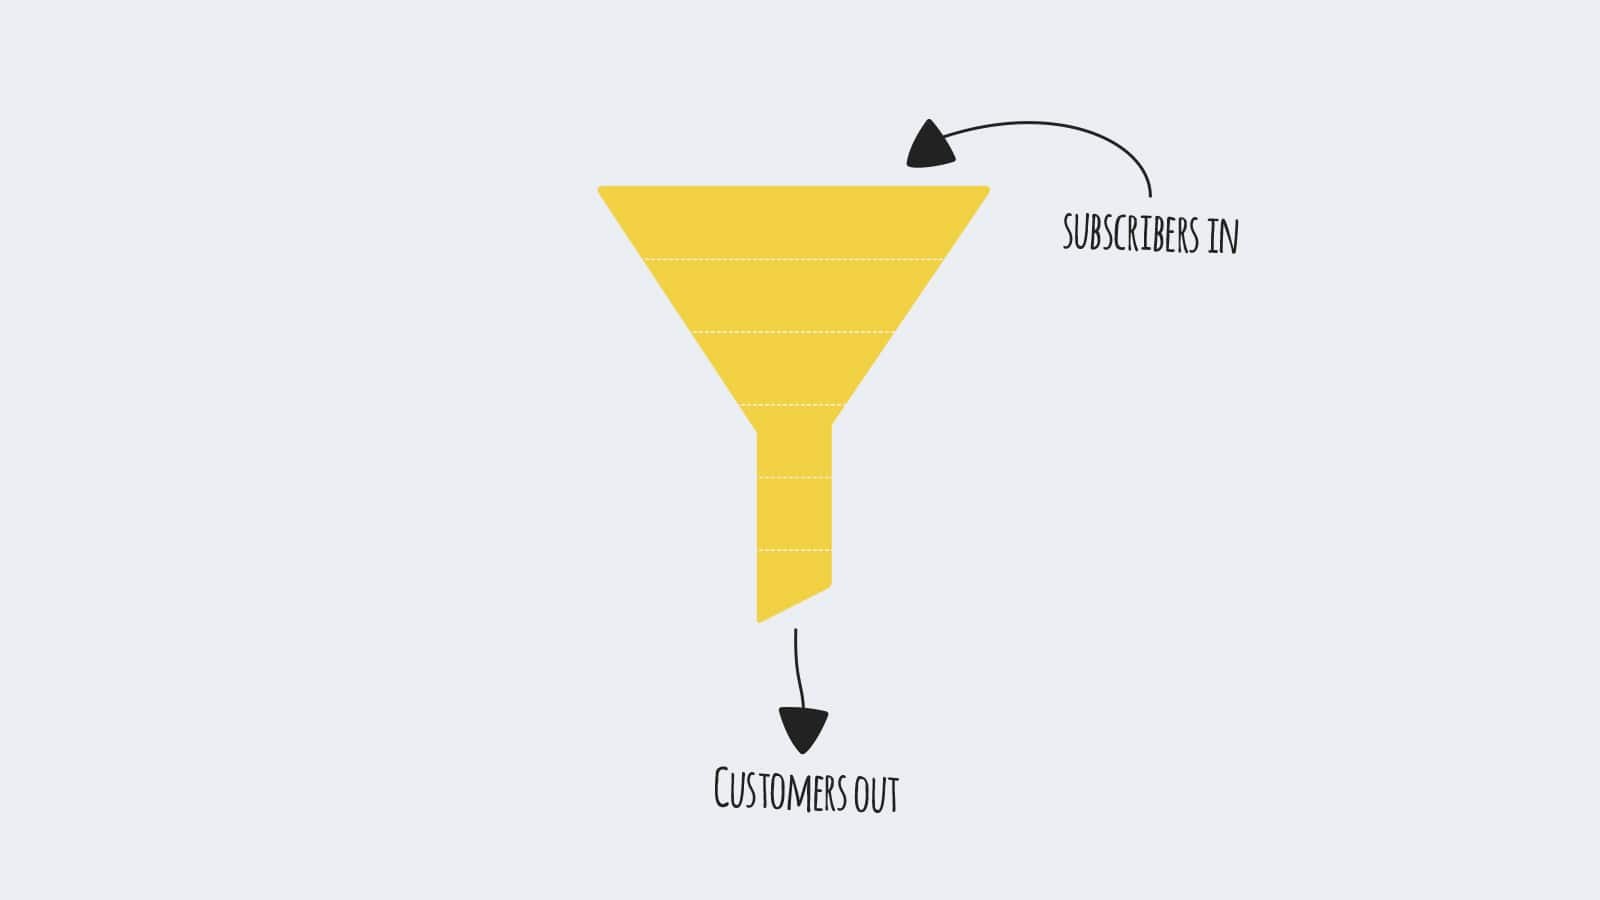 What a funnel looks like